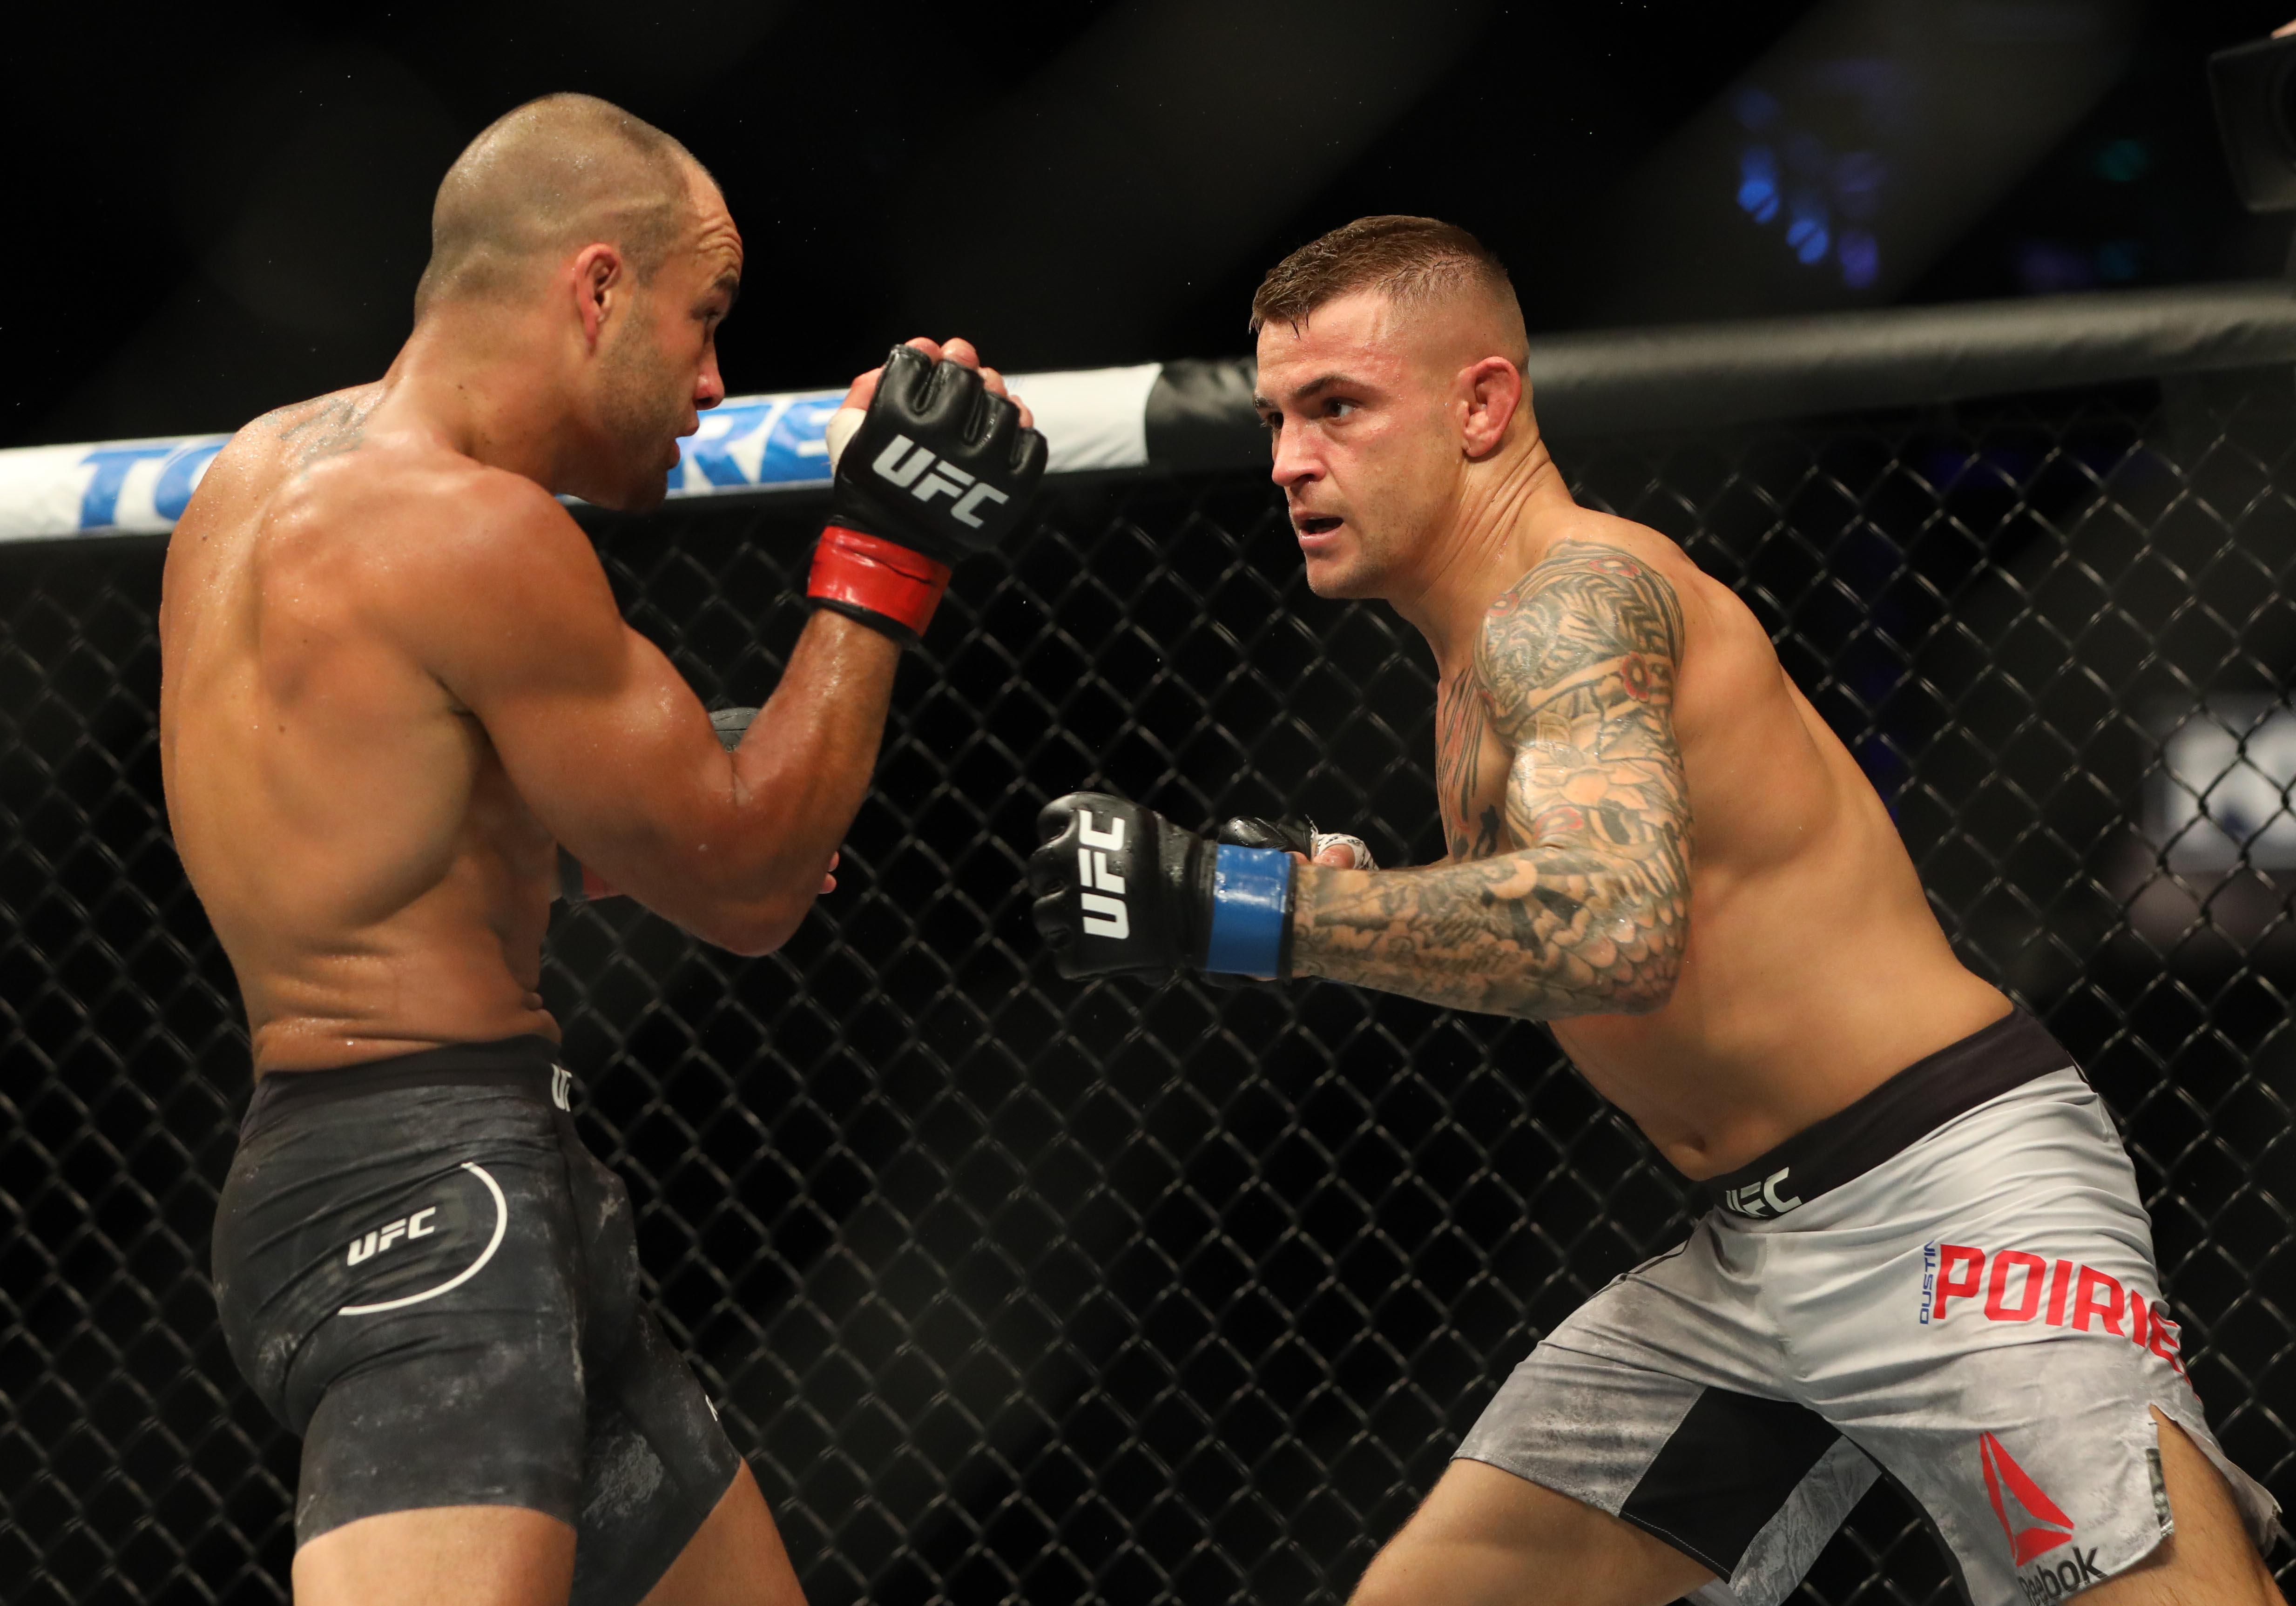 Poirier is fighting off the back of a second round knockout win against Eddie Alvarez